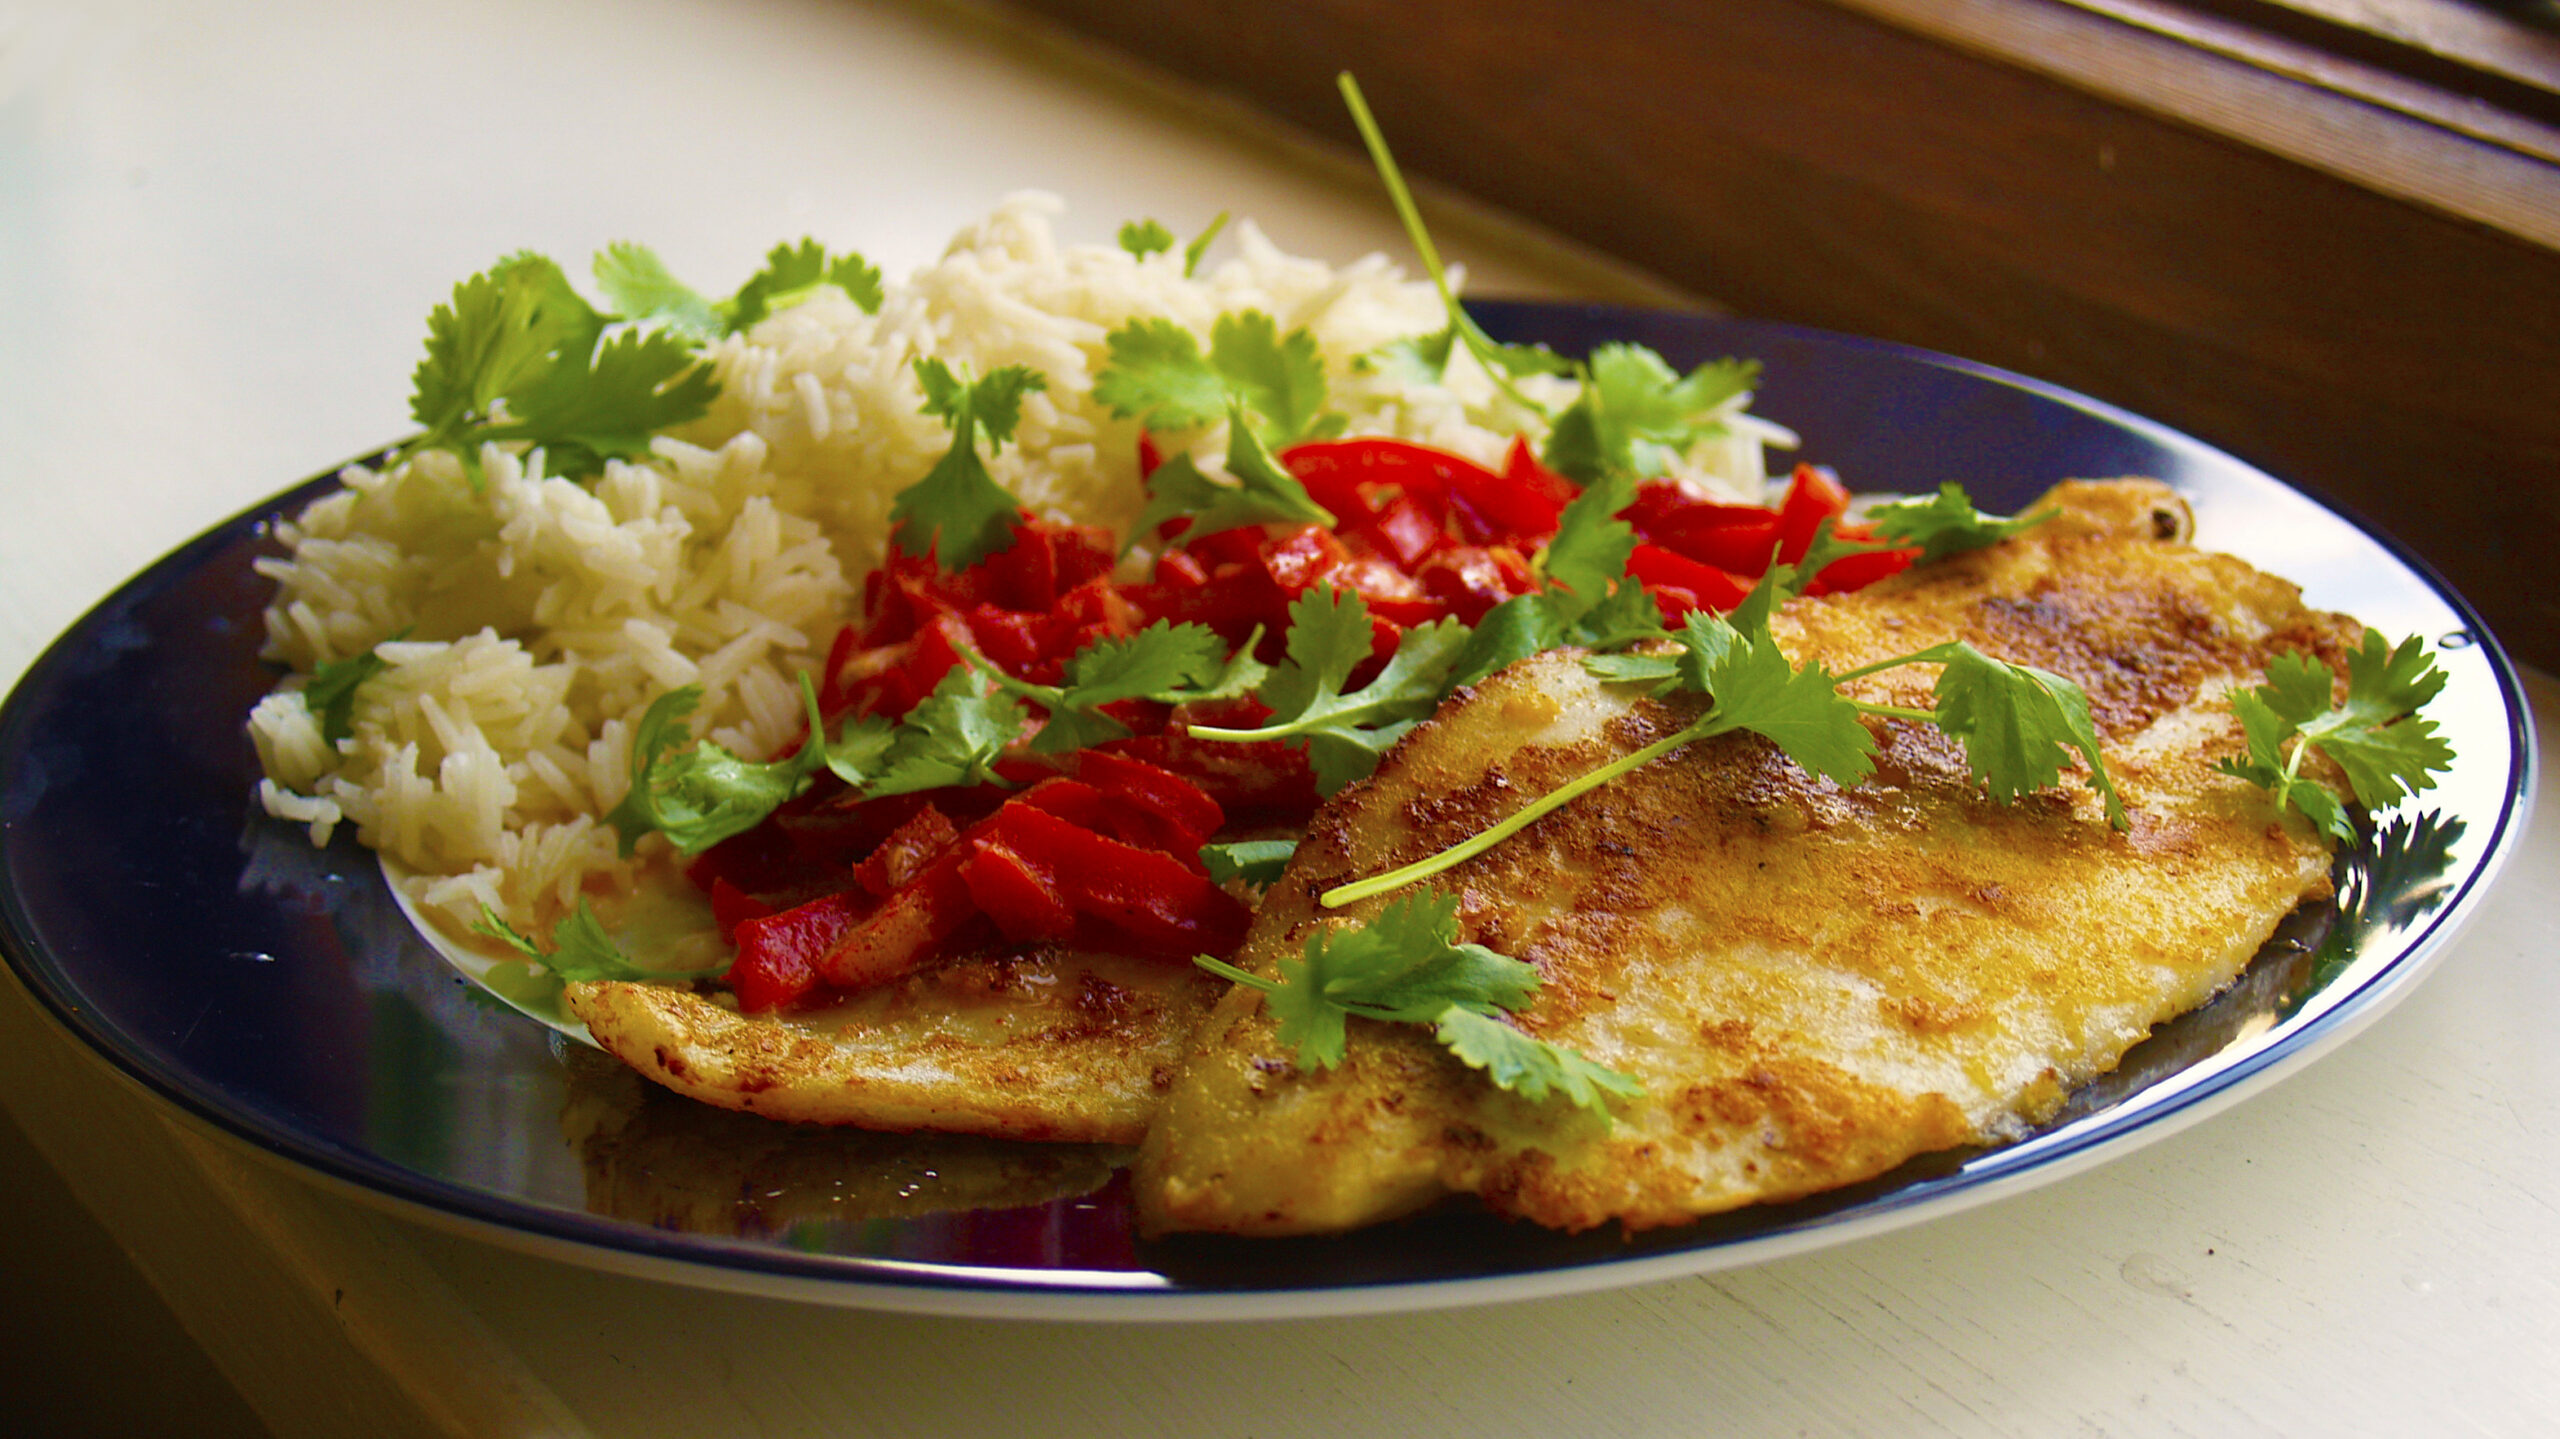 Pangasius with rice and red pepper. Credit: cyclonebill/CC BY-SA 2.0